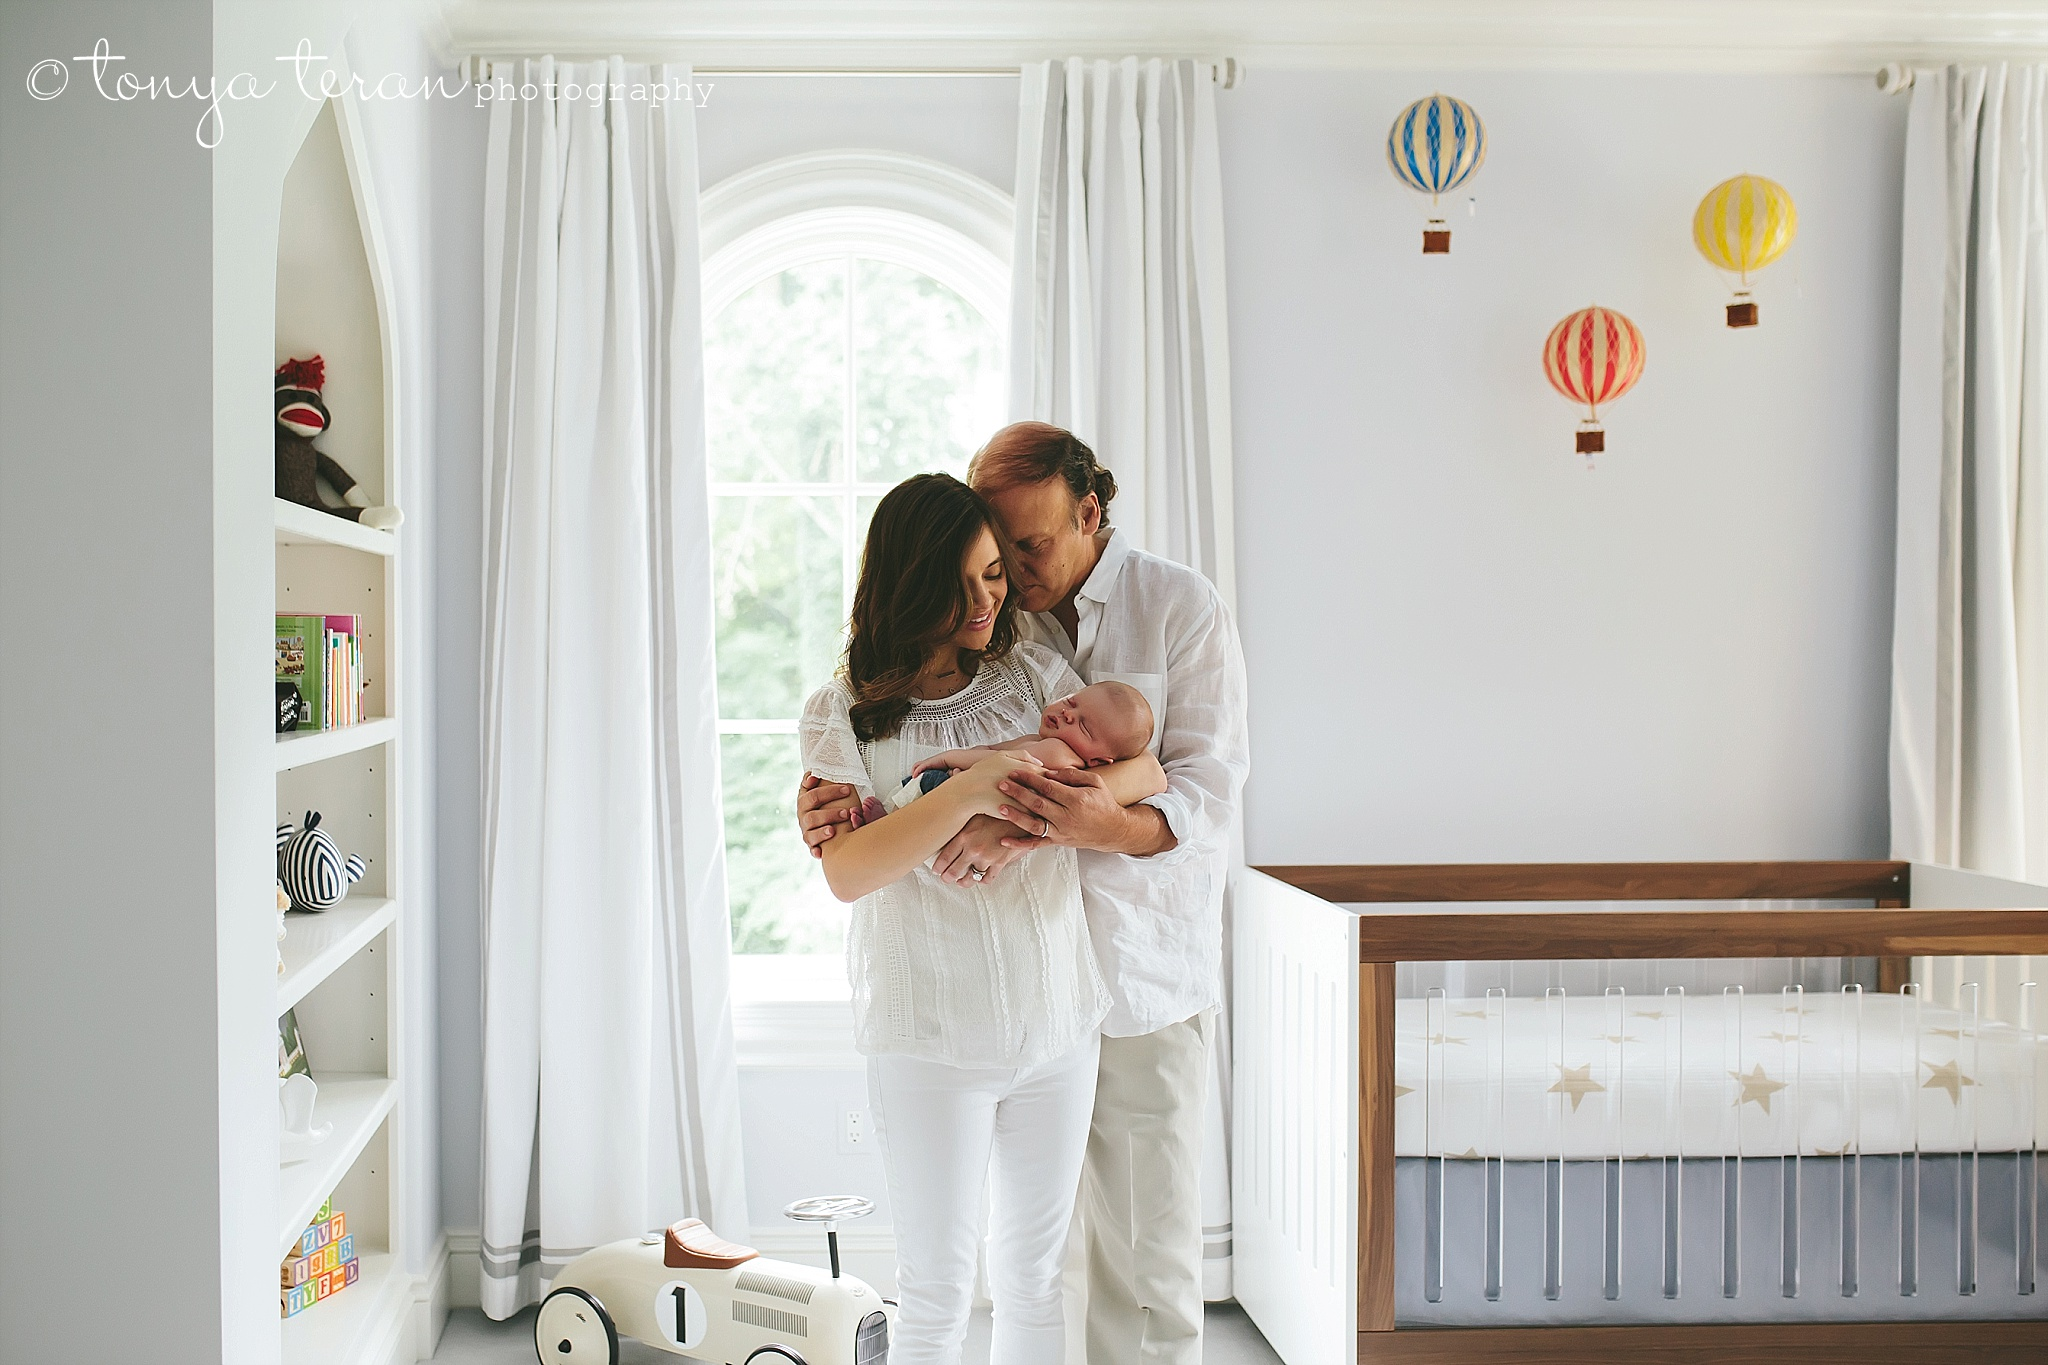 Newborn Photo Session | Tonya Teran Photography, McLean, VA Newborn, Baby, and Family Photographer